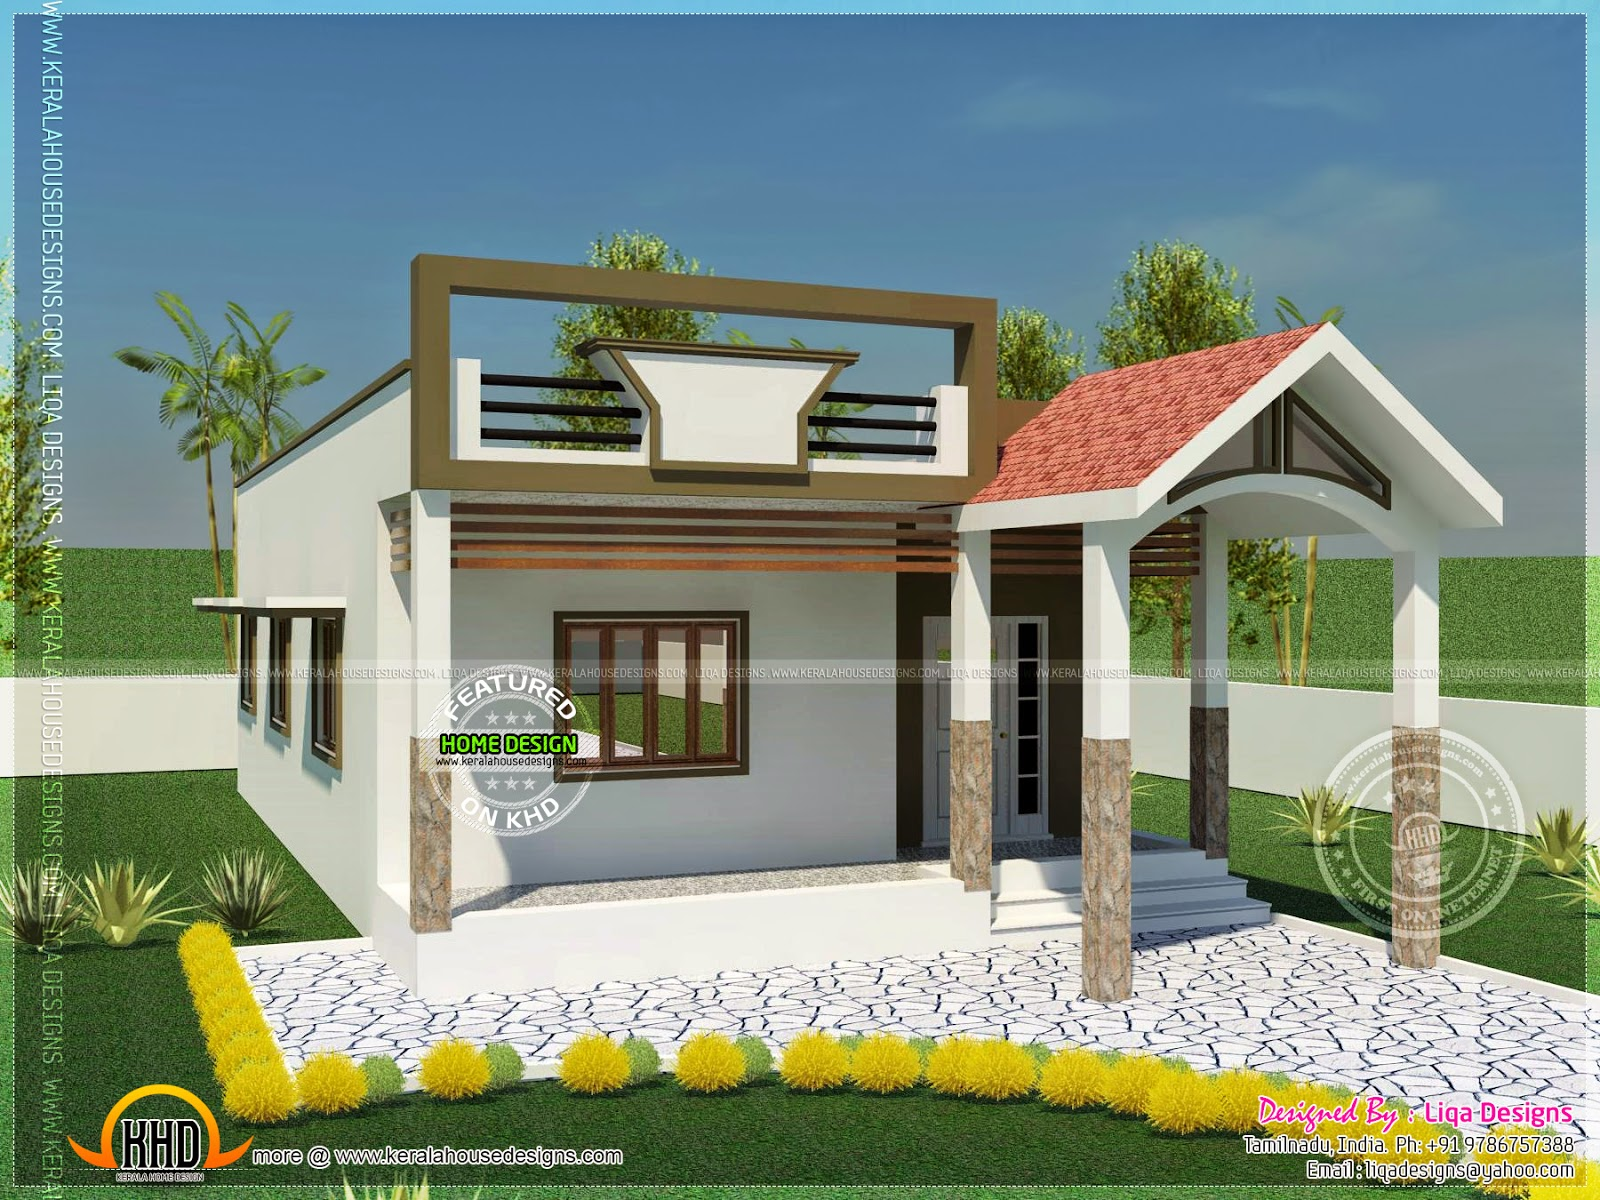 740 square feet single storied house Kerala home design and floor plans